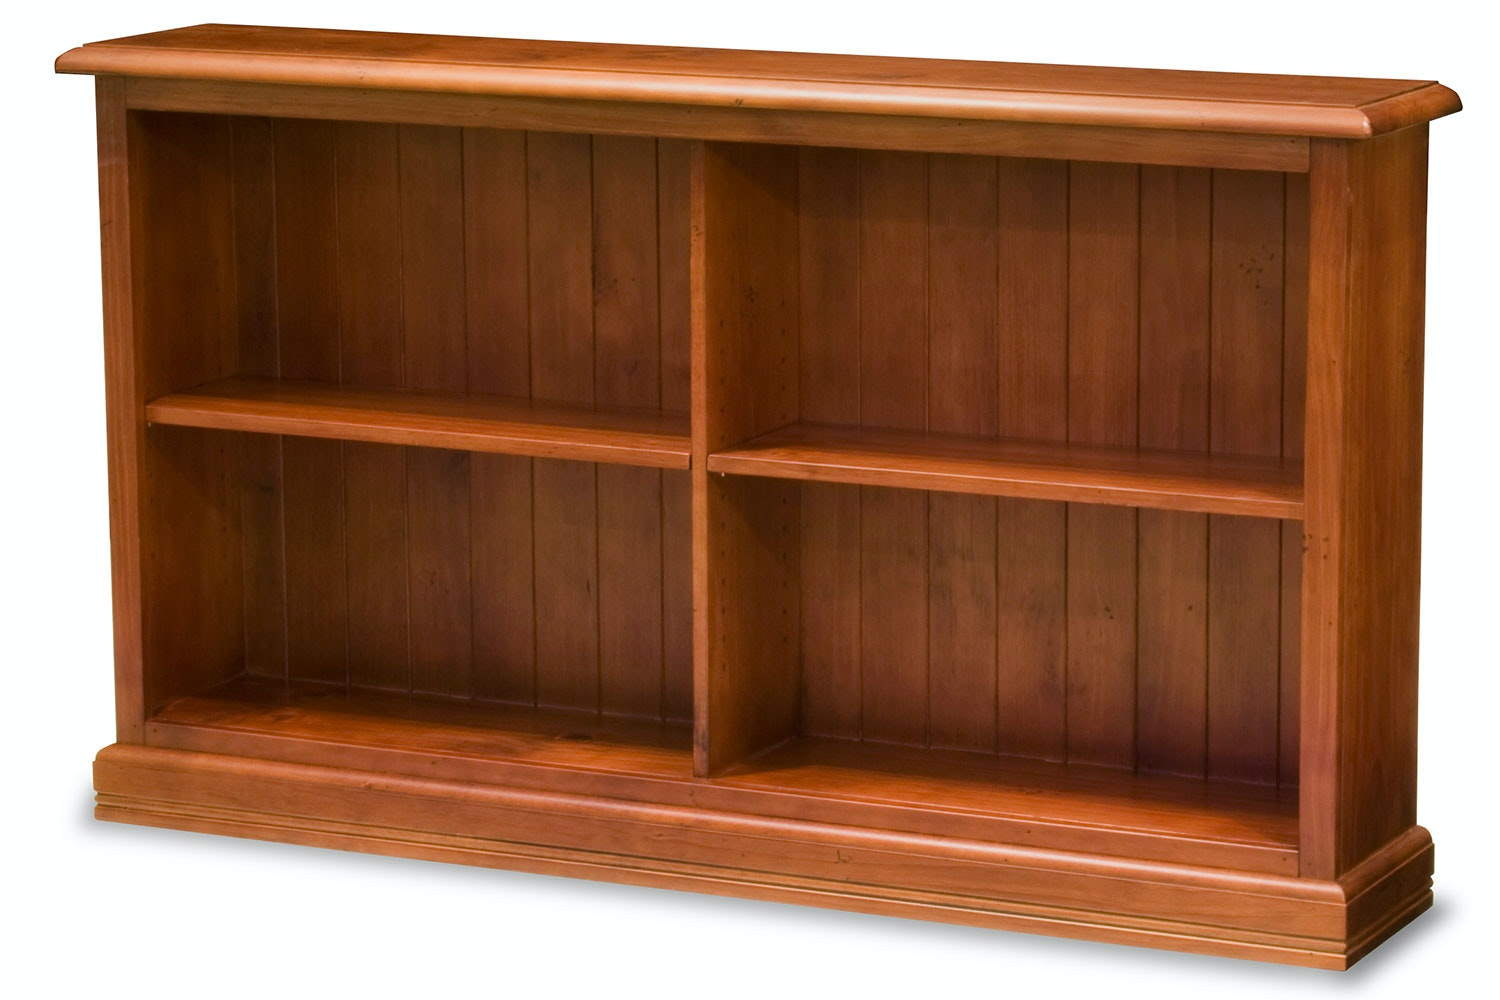 Waihi Bookcase by Galleon Furniture